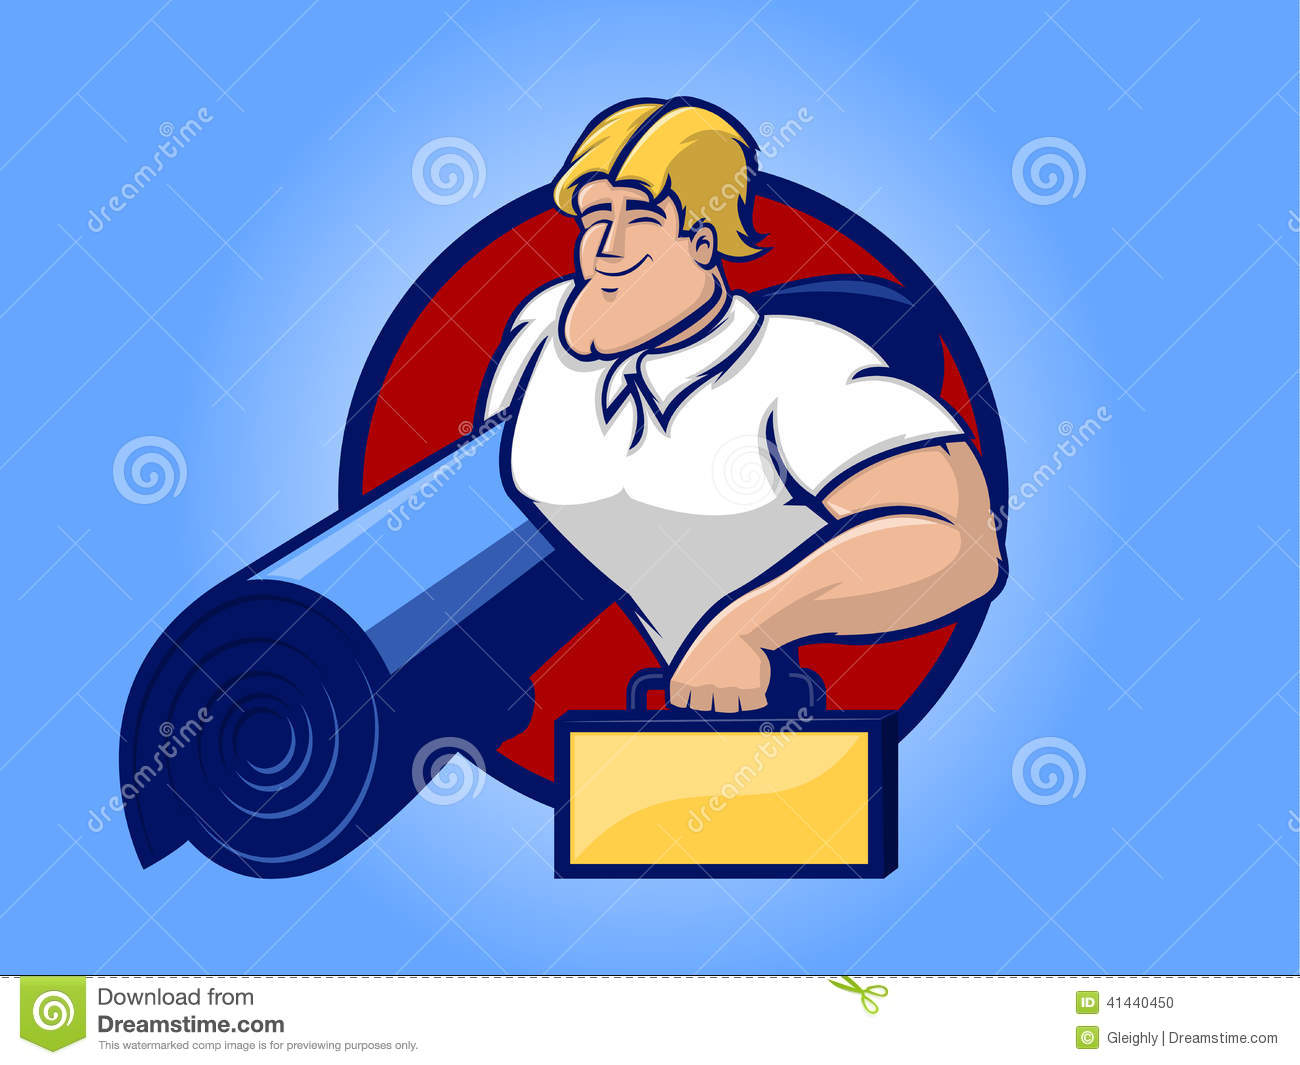 Illustration Of A Strong Repair Man Holding Rug Ad Tool Box